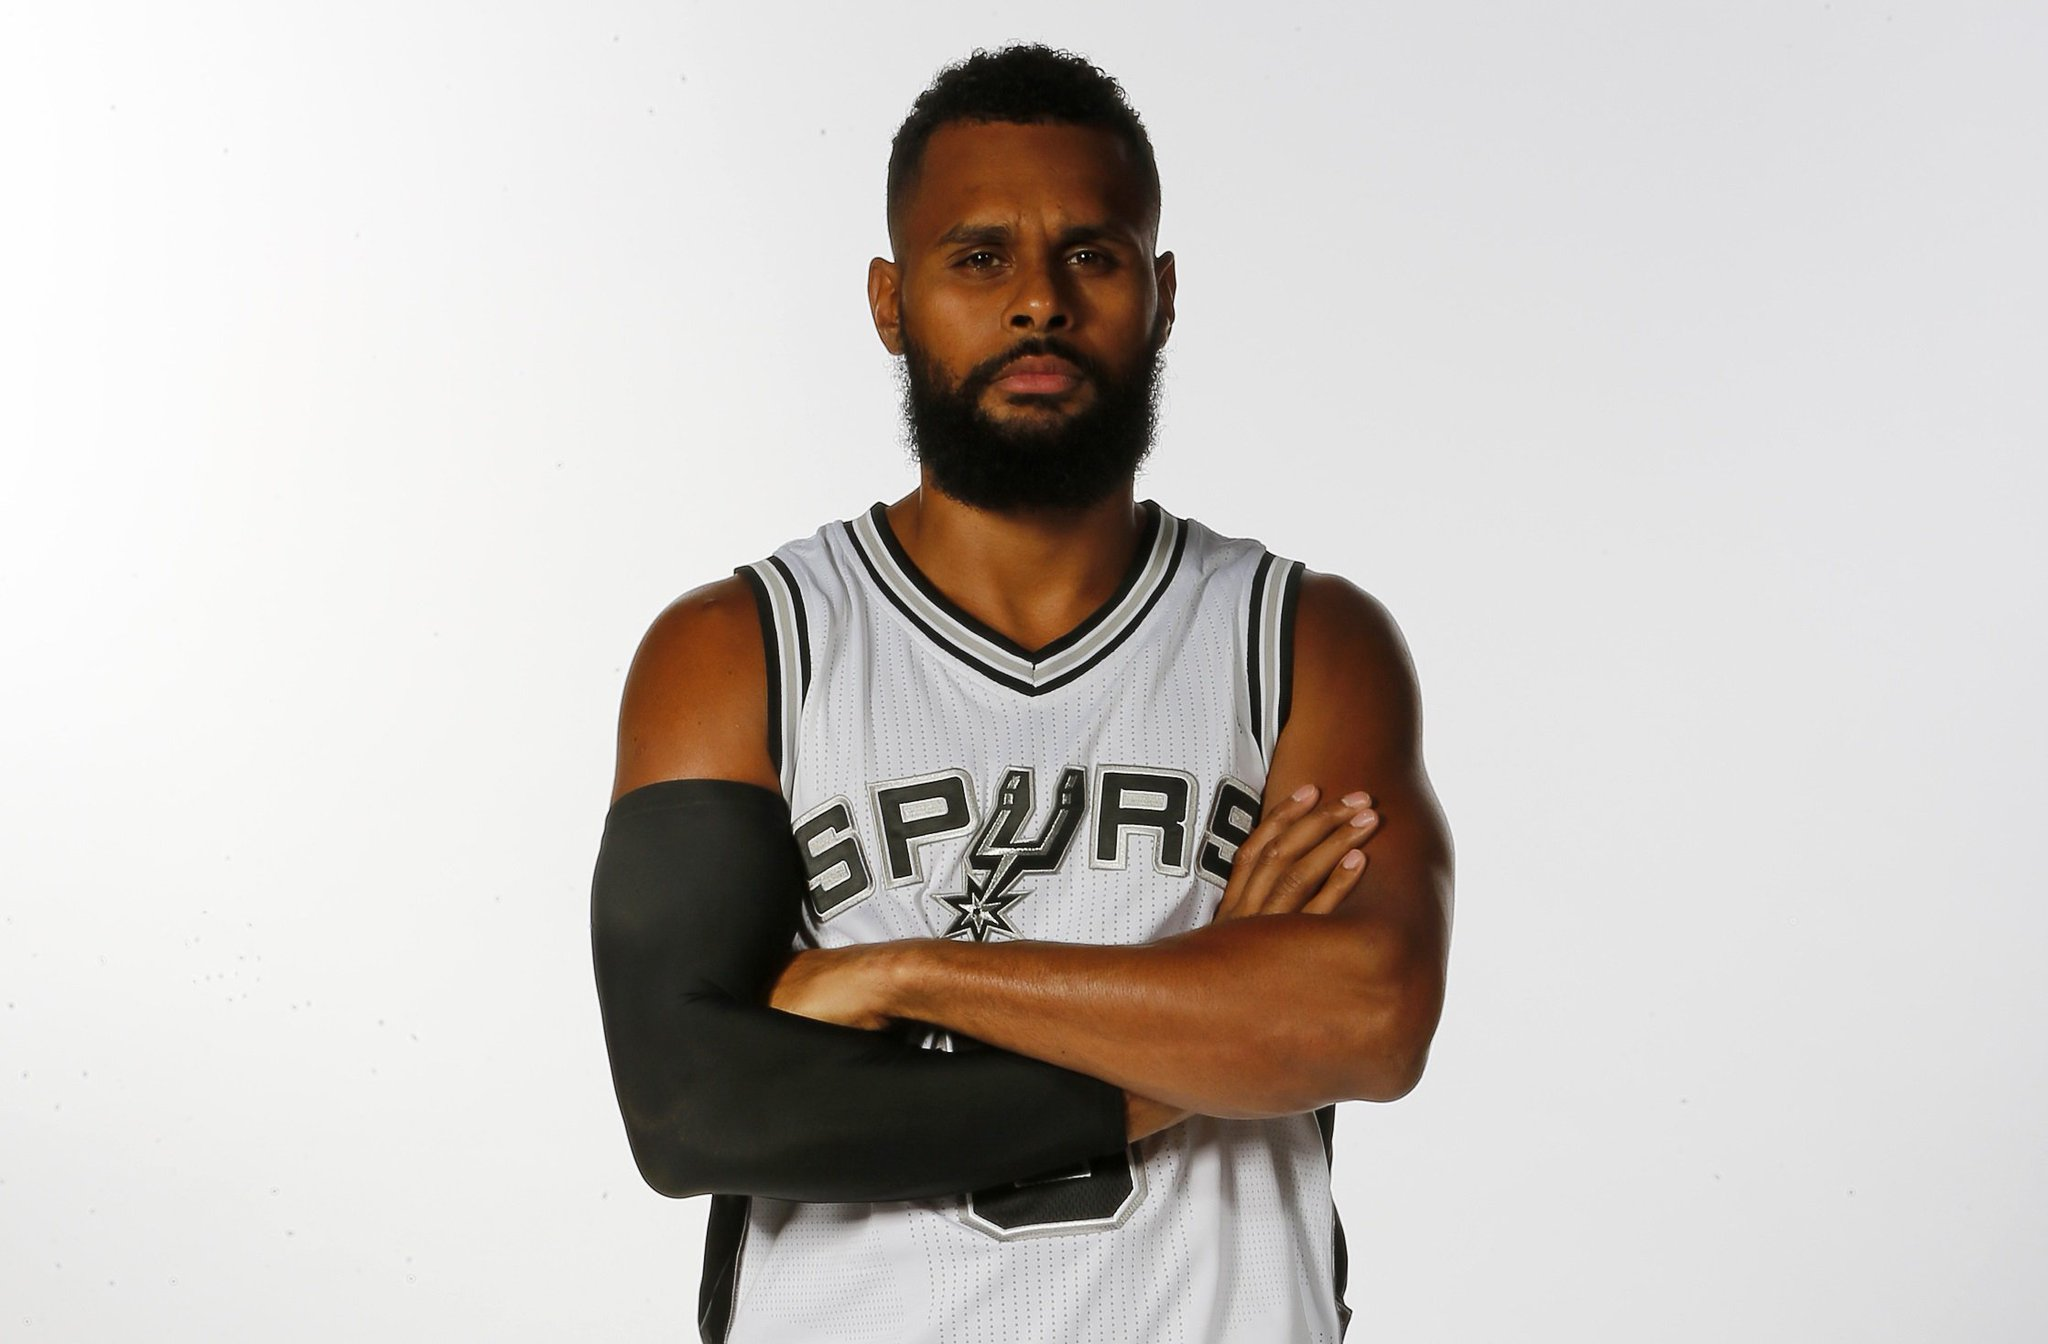 Join us in wishing @Patty_Mills of the @spurs a HAPPY 29th BIRTHDAY! #NBABDAY https://t.co/GTynB4Gnas